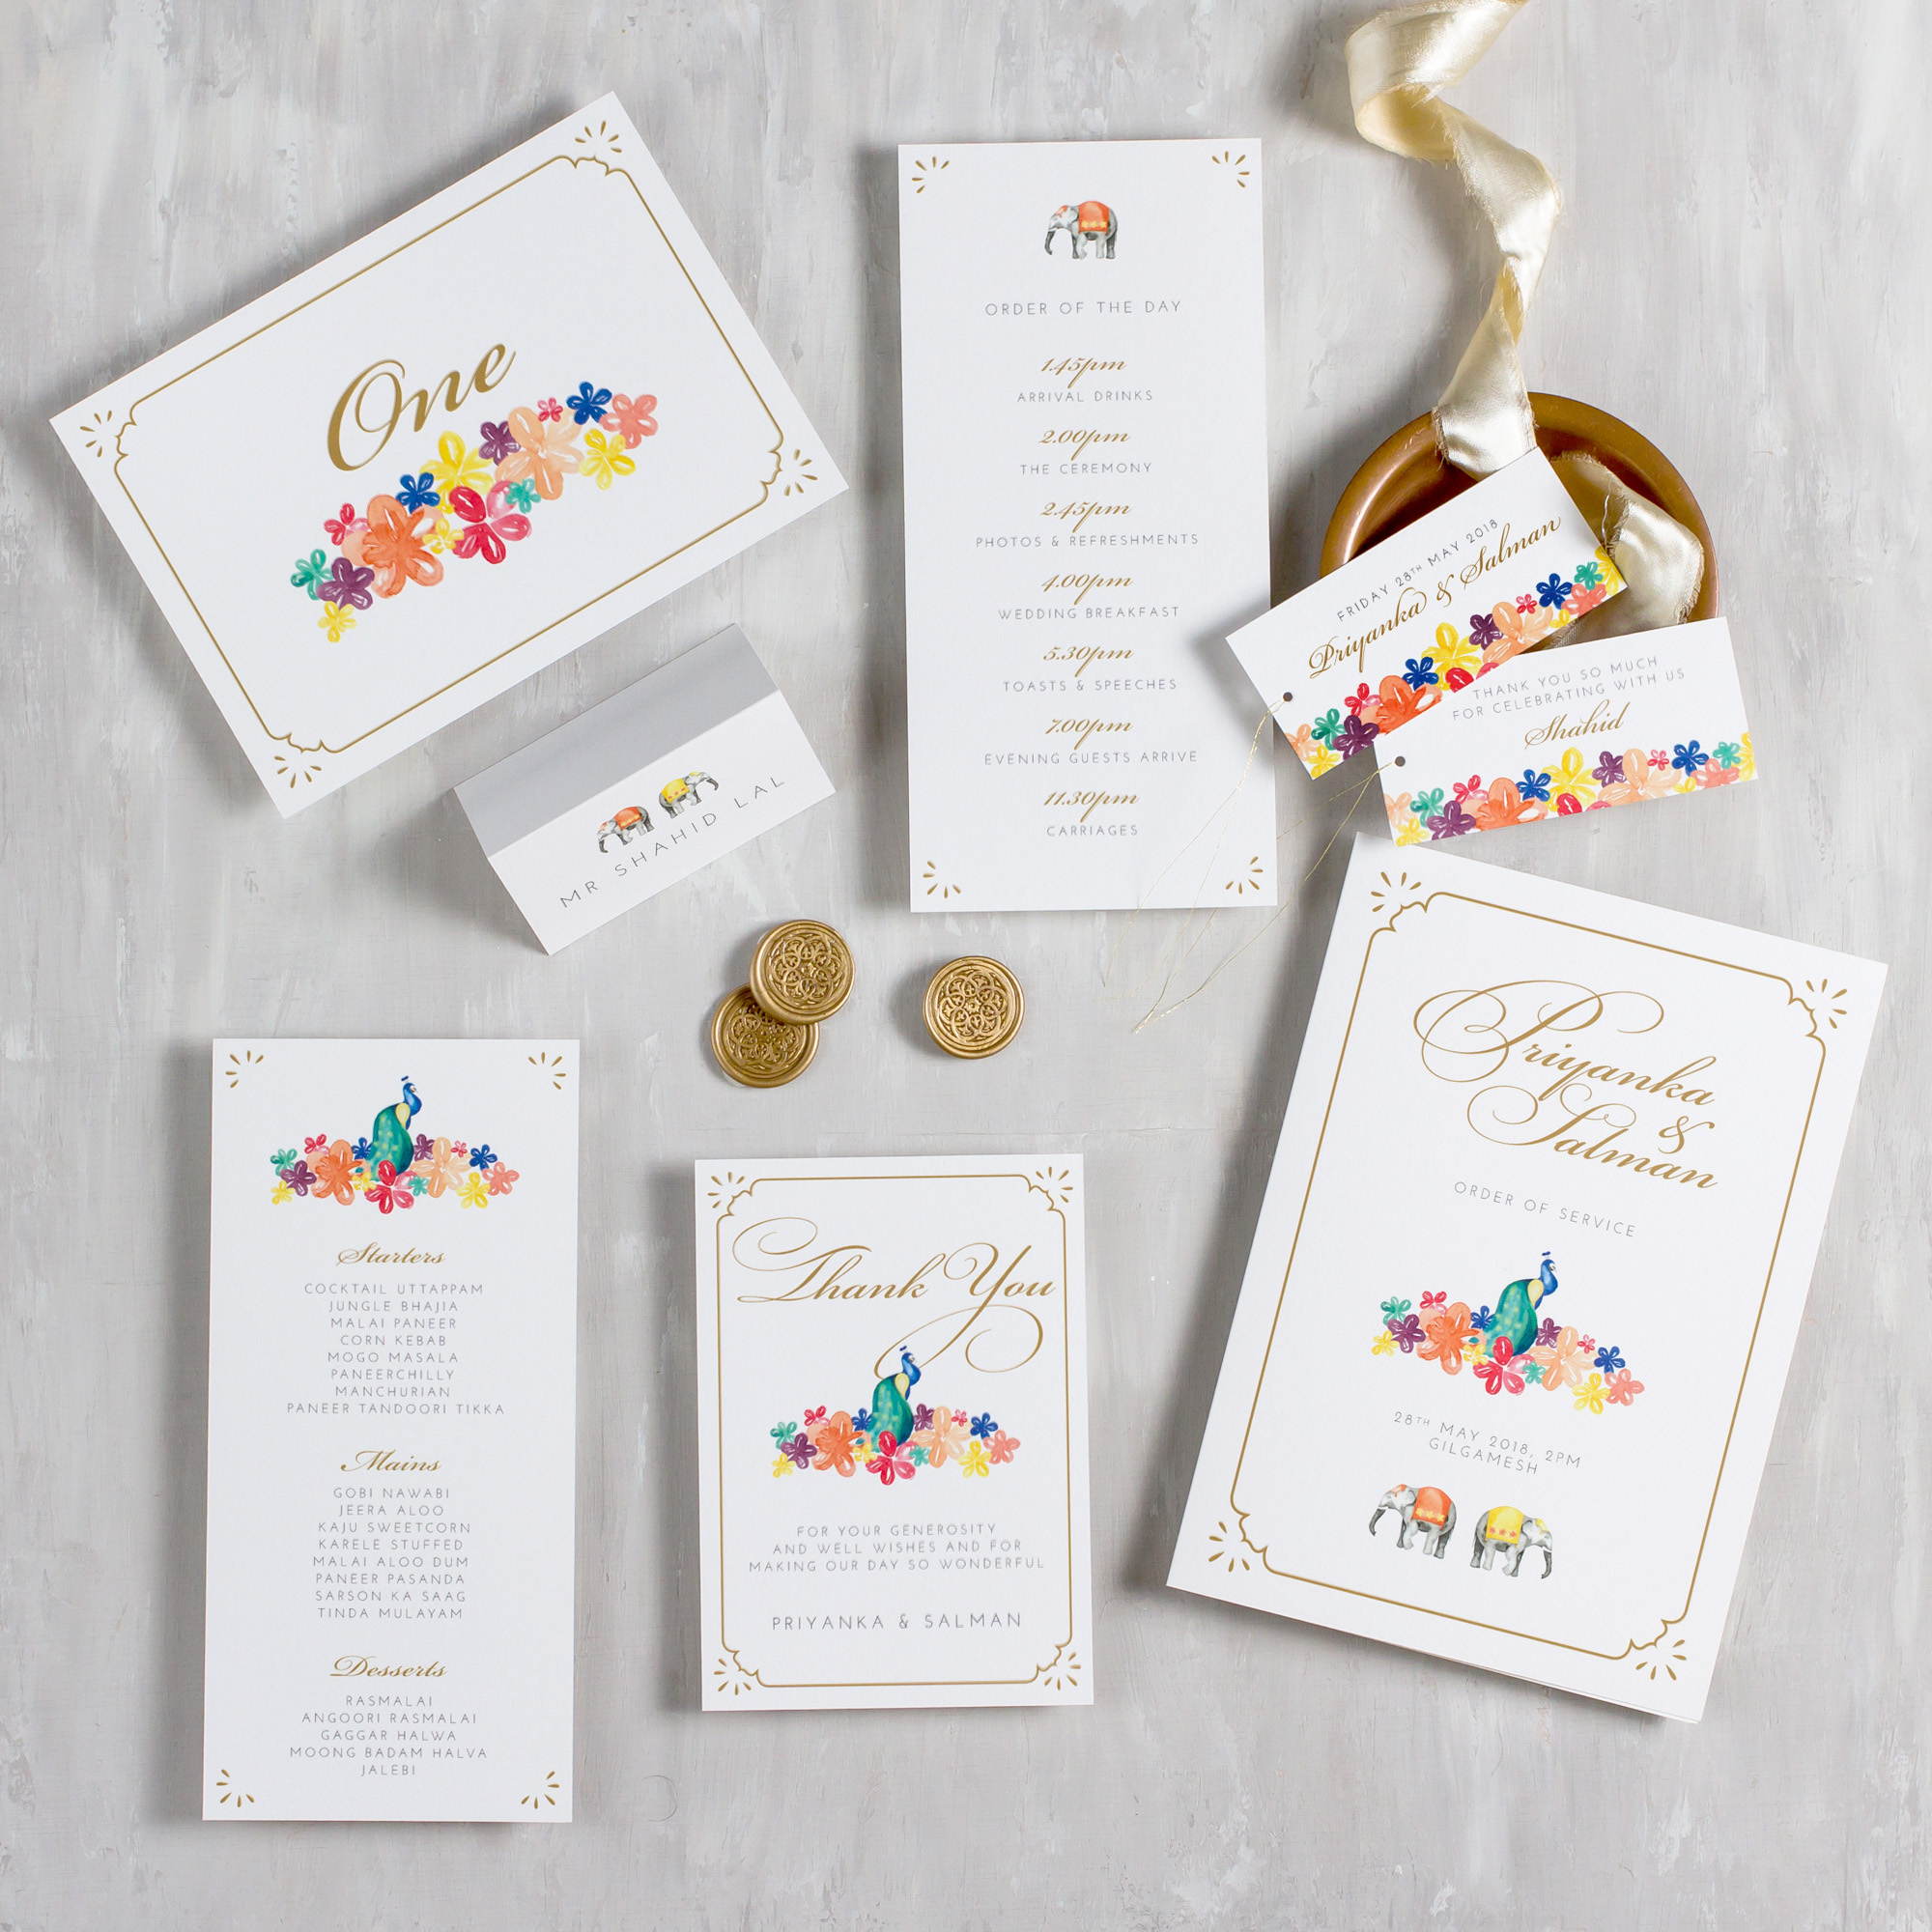 Indian-Summer-Wedding-Stationery-Luxury-Unique-Hand-Painted-Botanical-Peacock-Elephant-Summer-Bright-Gold-Hand-Painted-Wedding-On-The-Day-Collection-Pingle-Pie.jpg